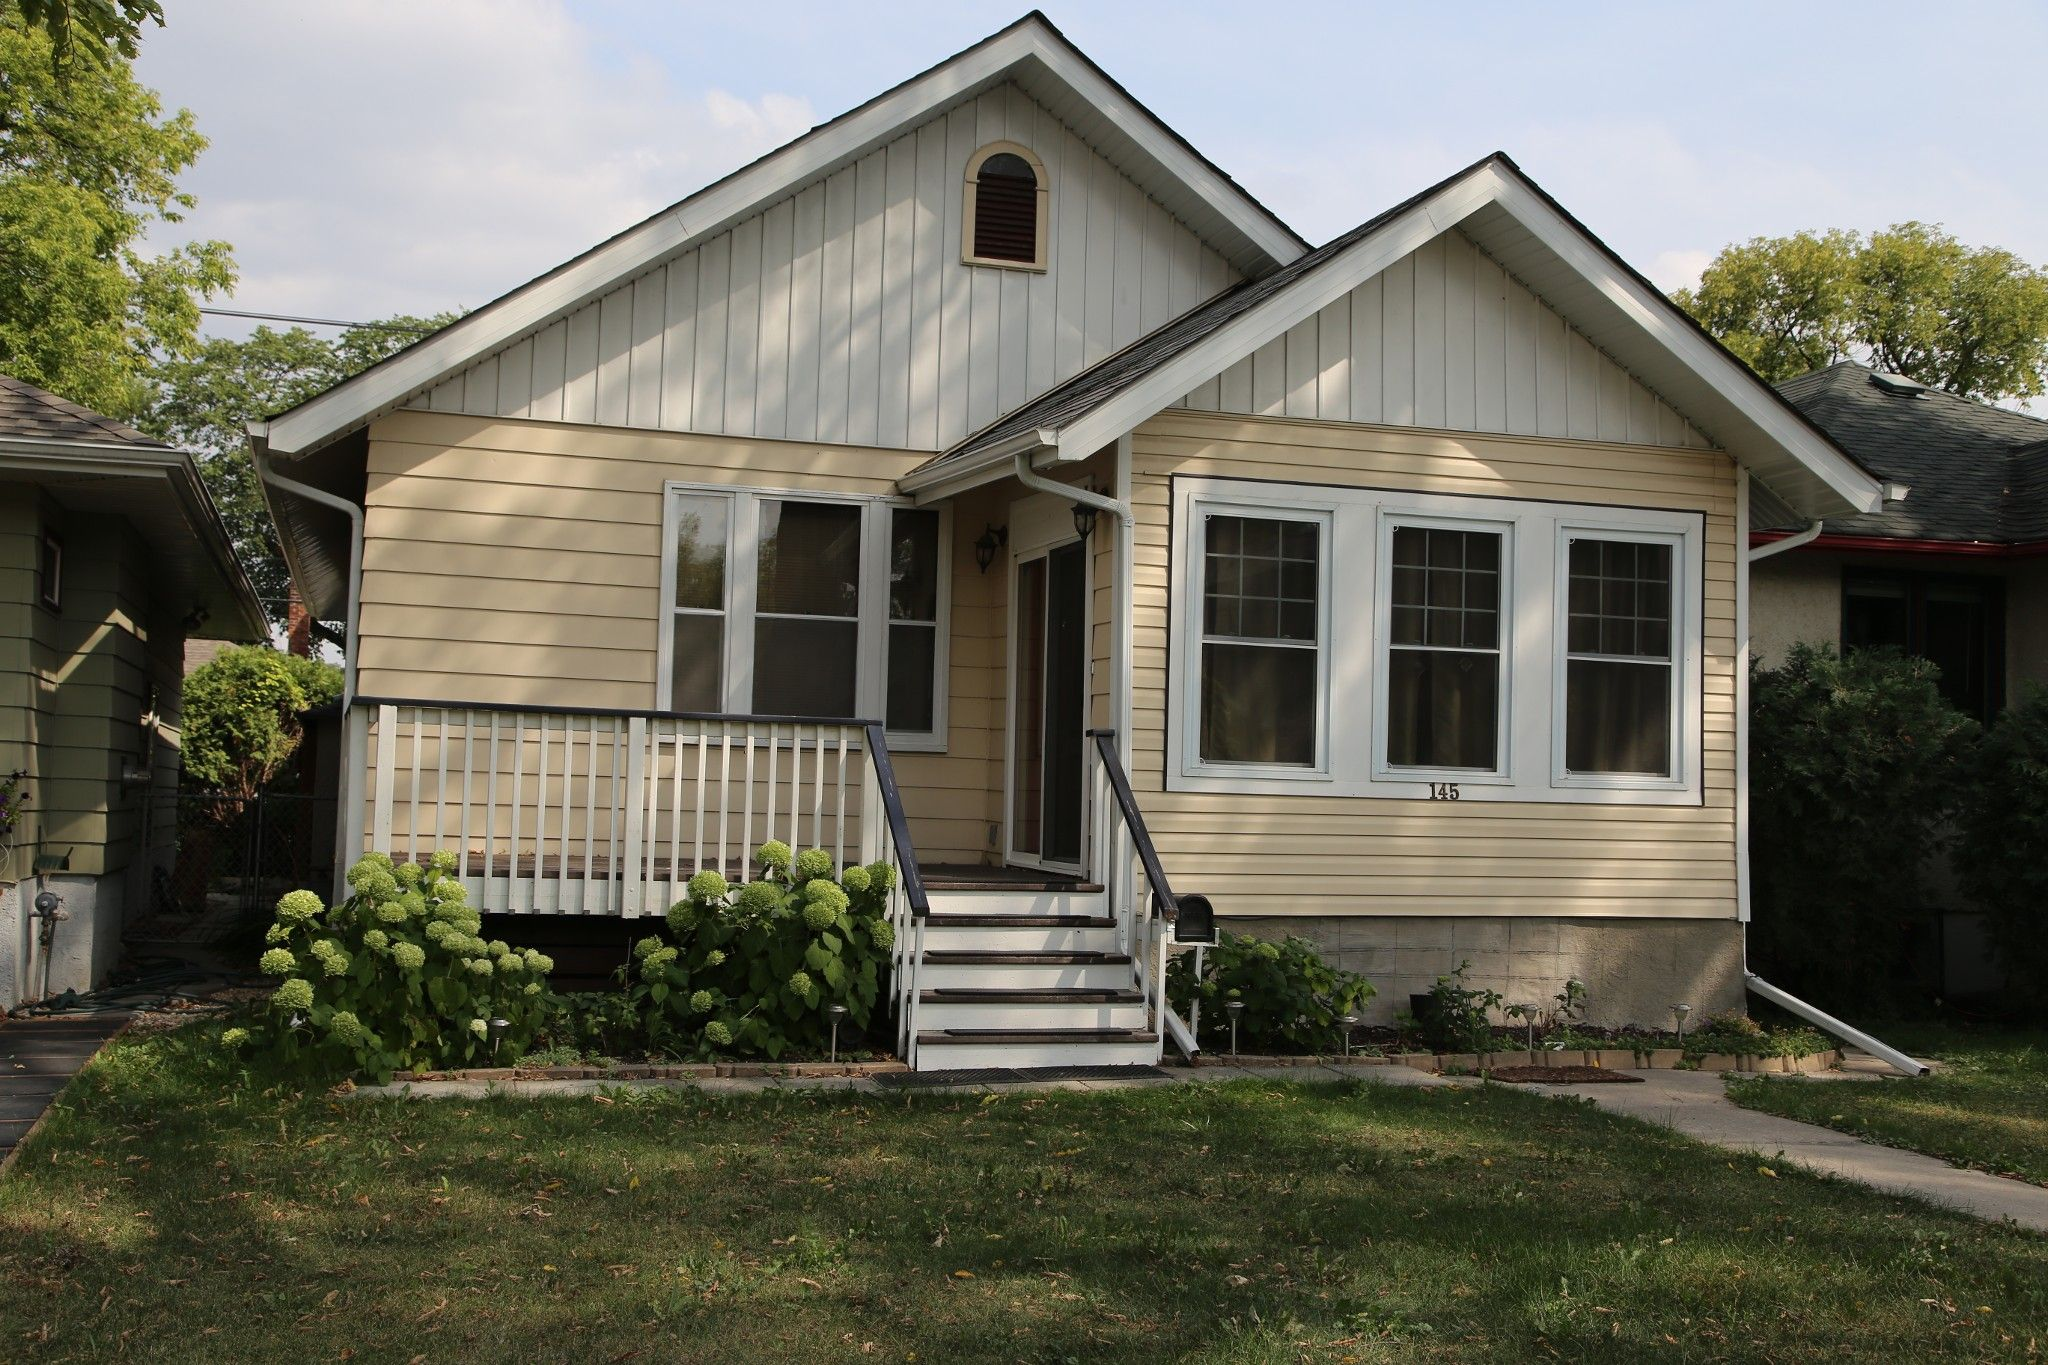 Welcome to 145 Garfield St. in Wolseley